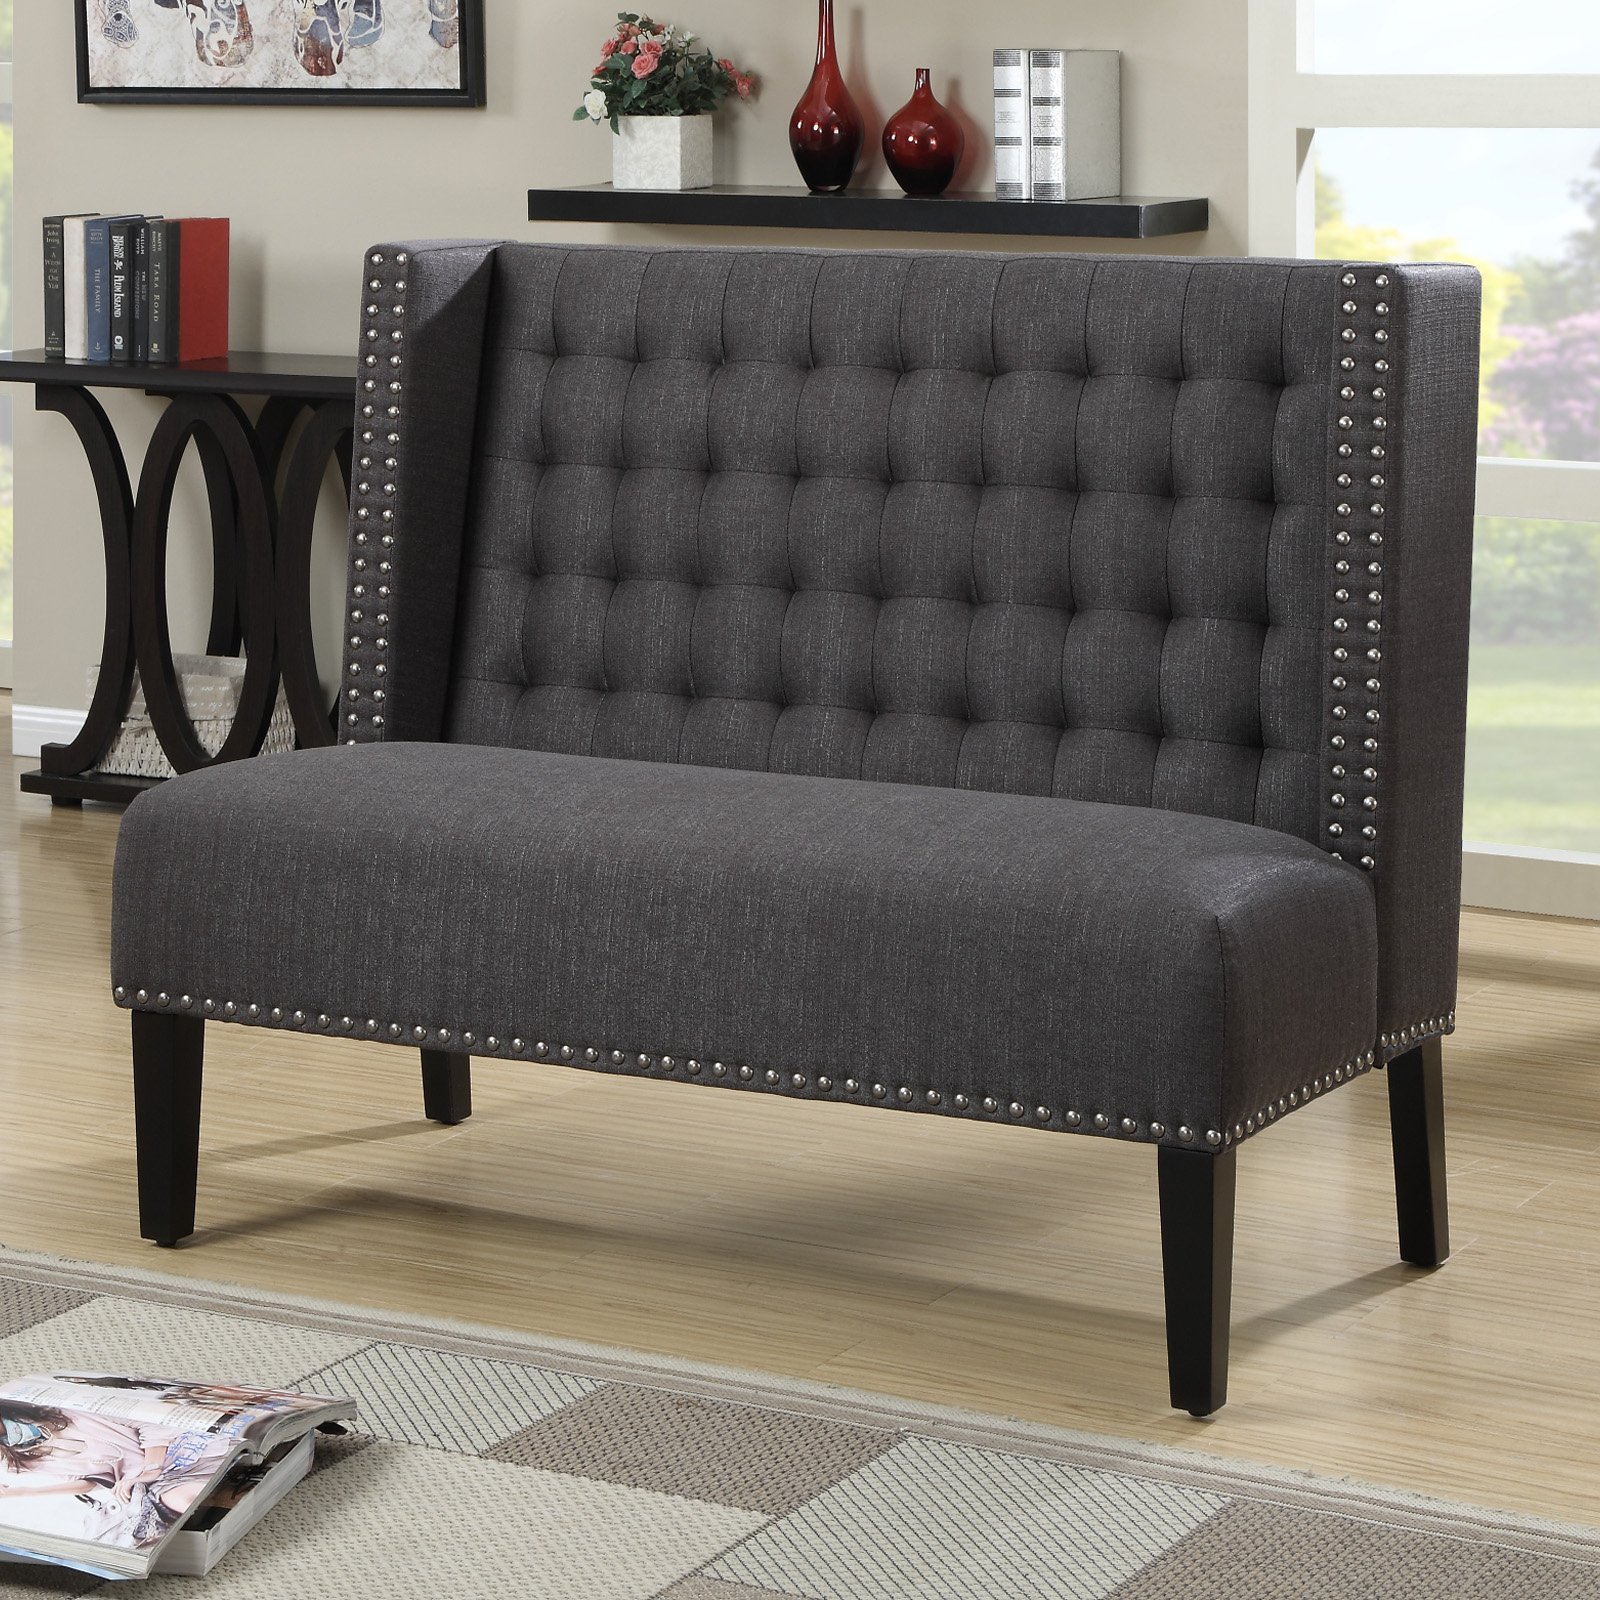 Home Meridian Banquette Bench   Tuxedo Anthracite